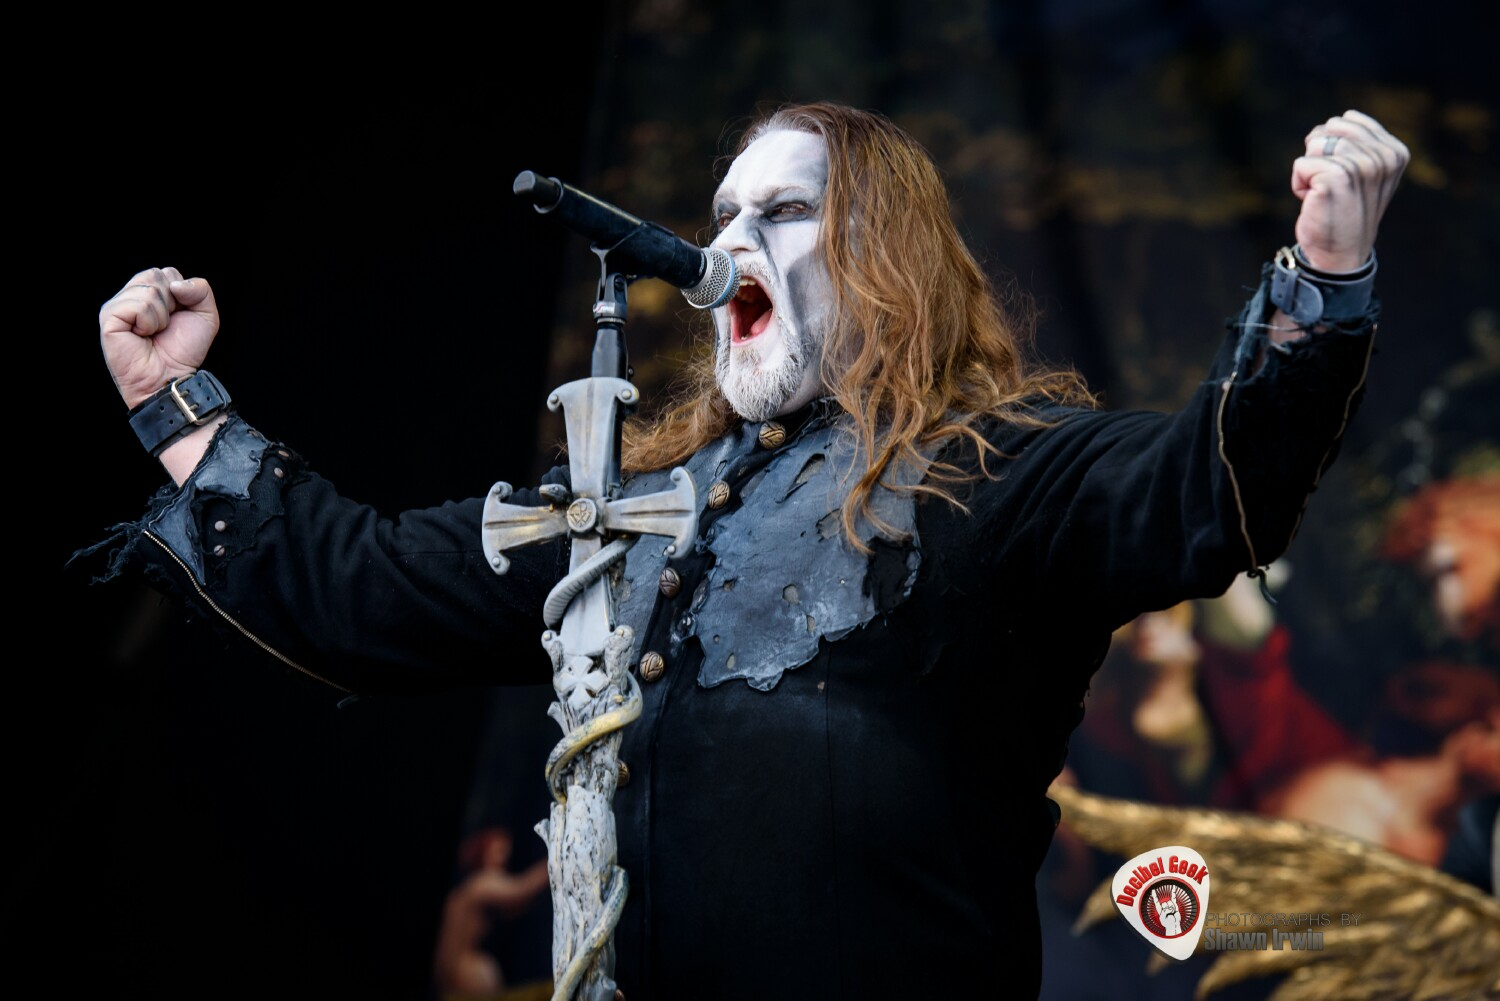 Powerwolf #6-SRF 2019-Shawn Irwin